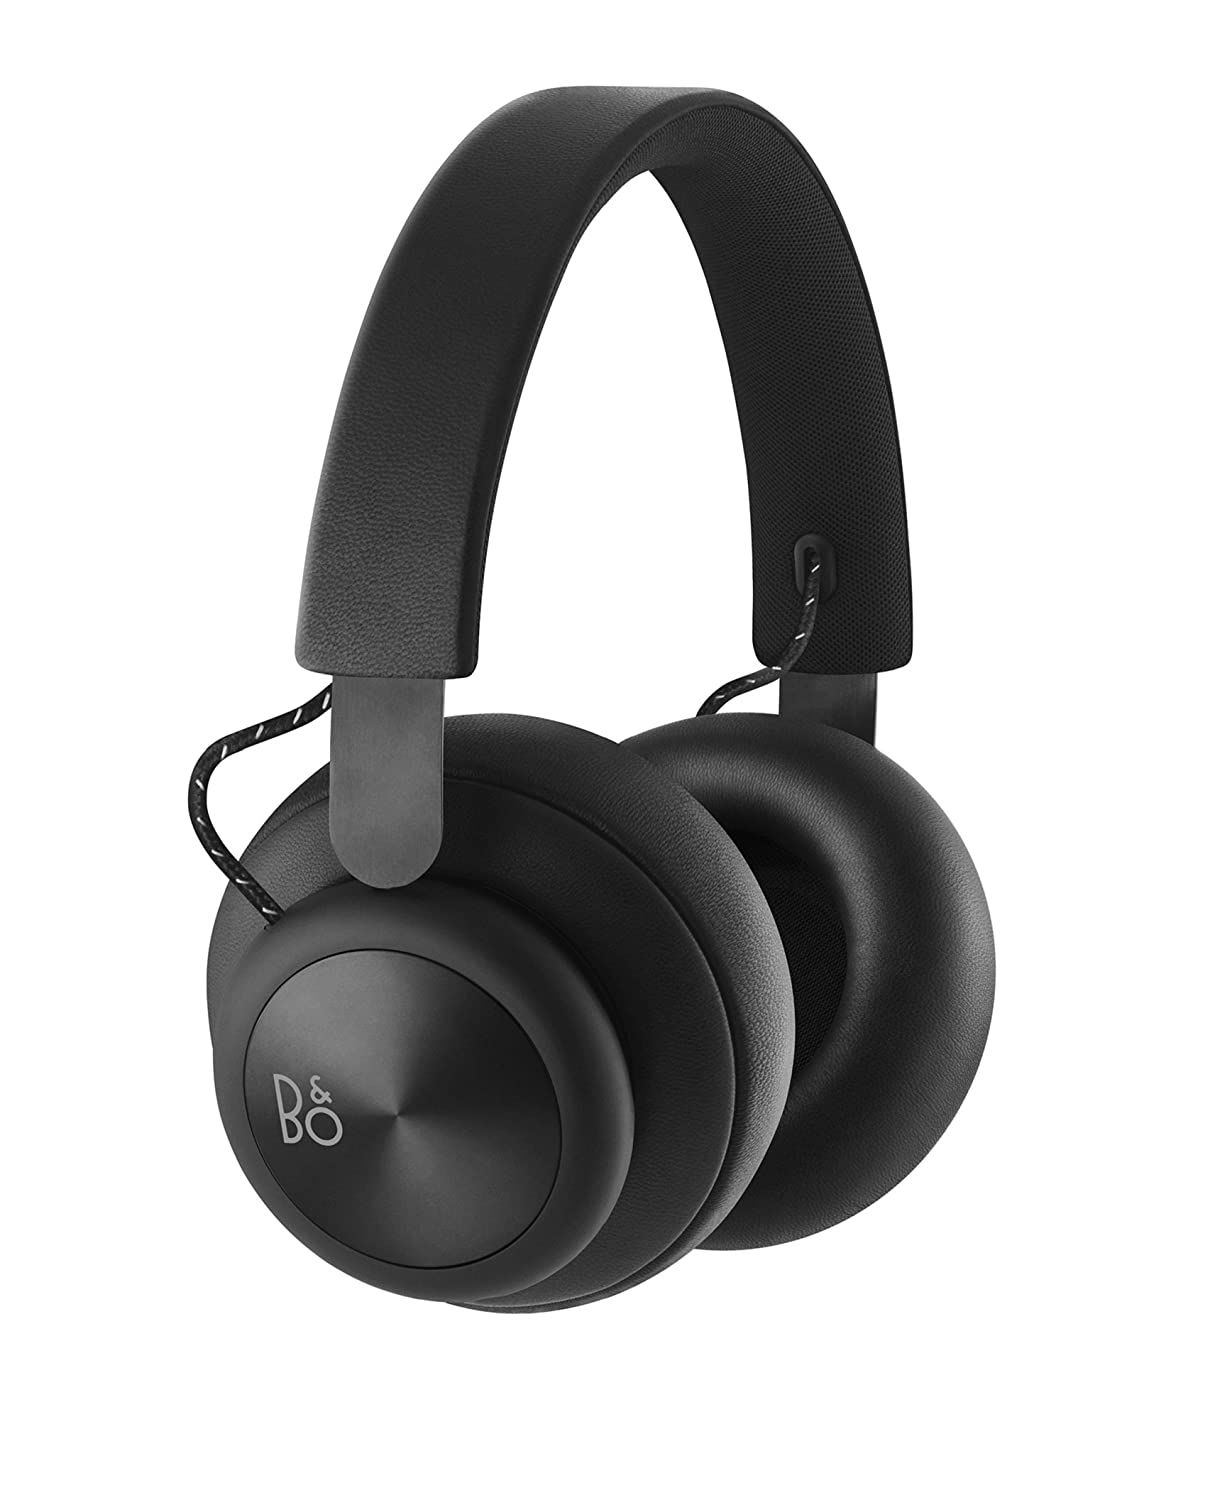 Bang & Olufsen Beoplay H4 Wireless Headphones - Black